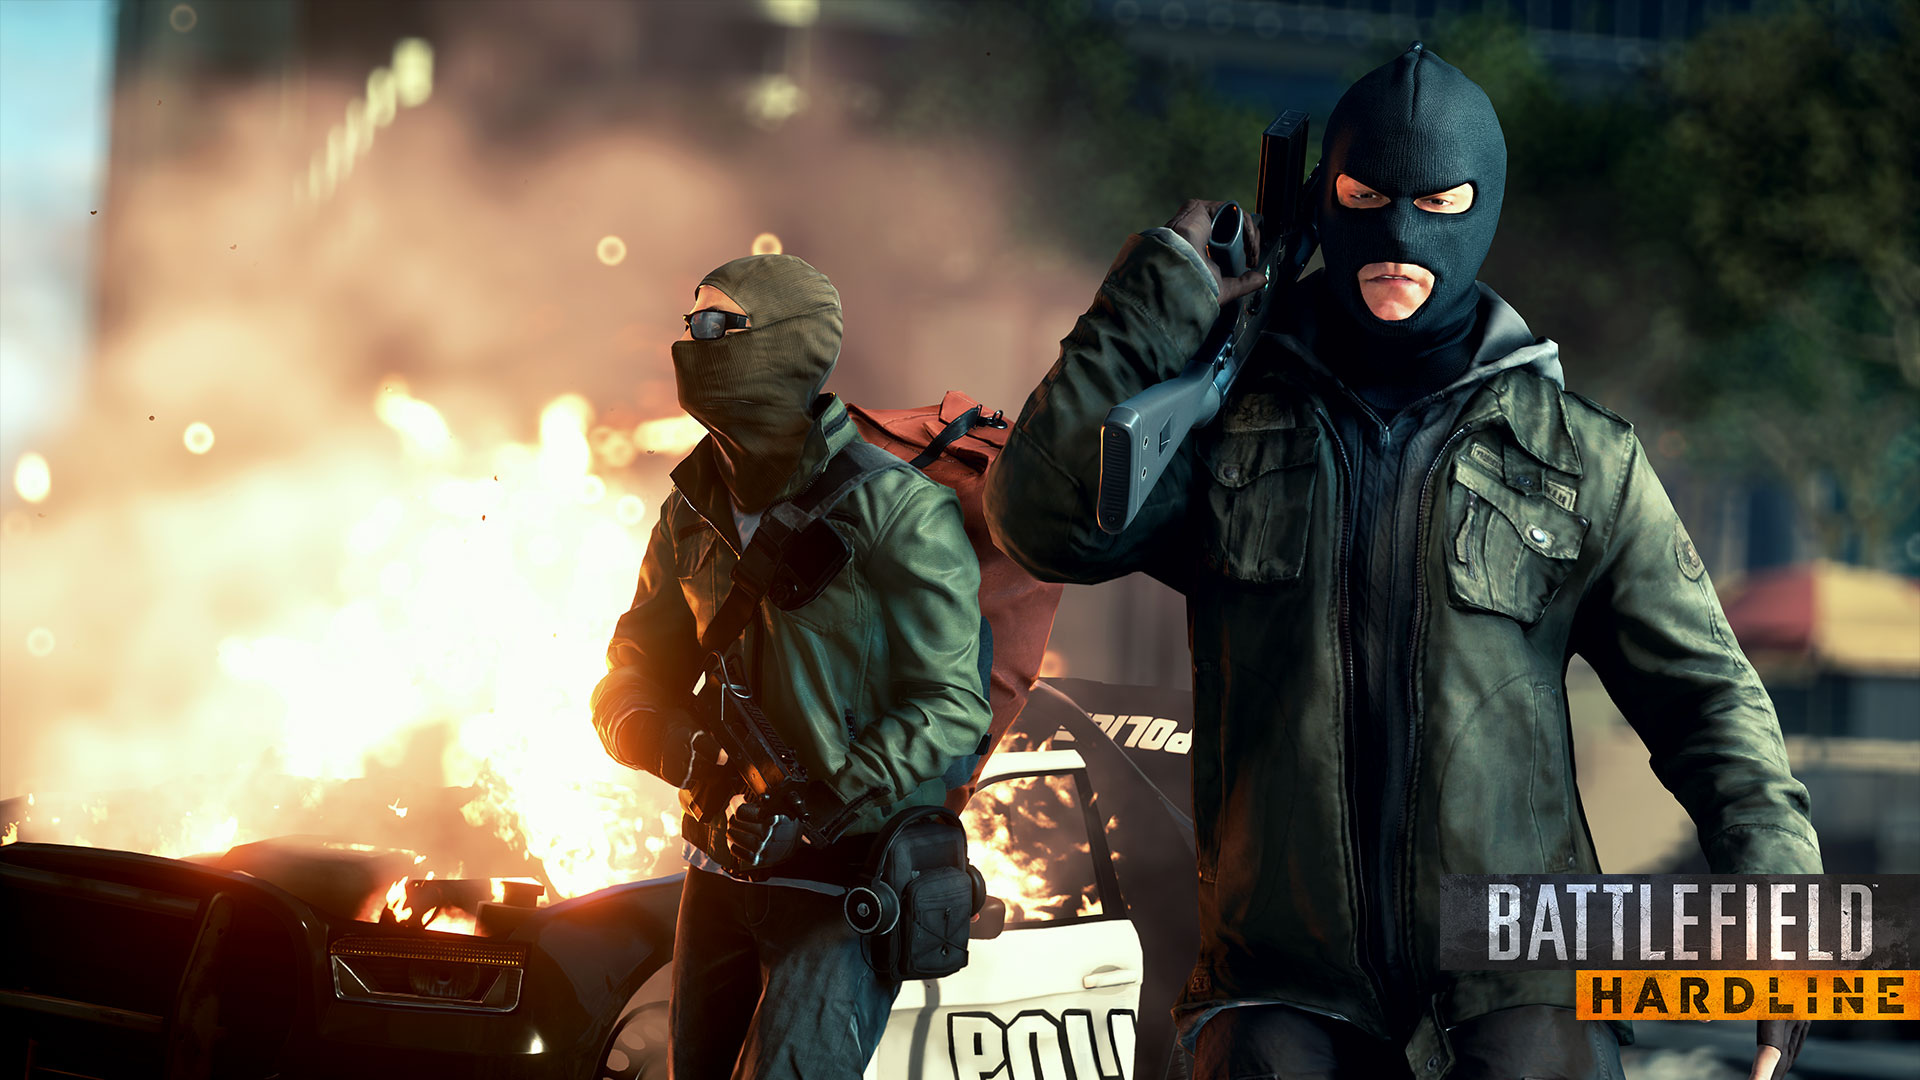 Is Battlefield Hardline too big of a change, or not enough?